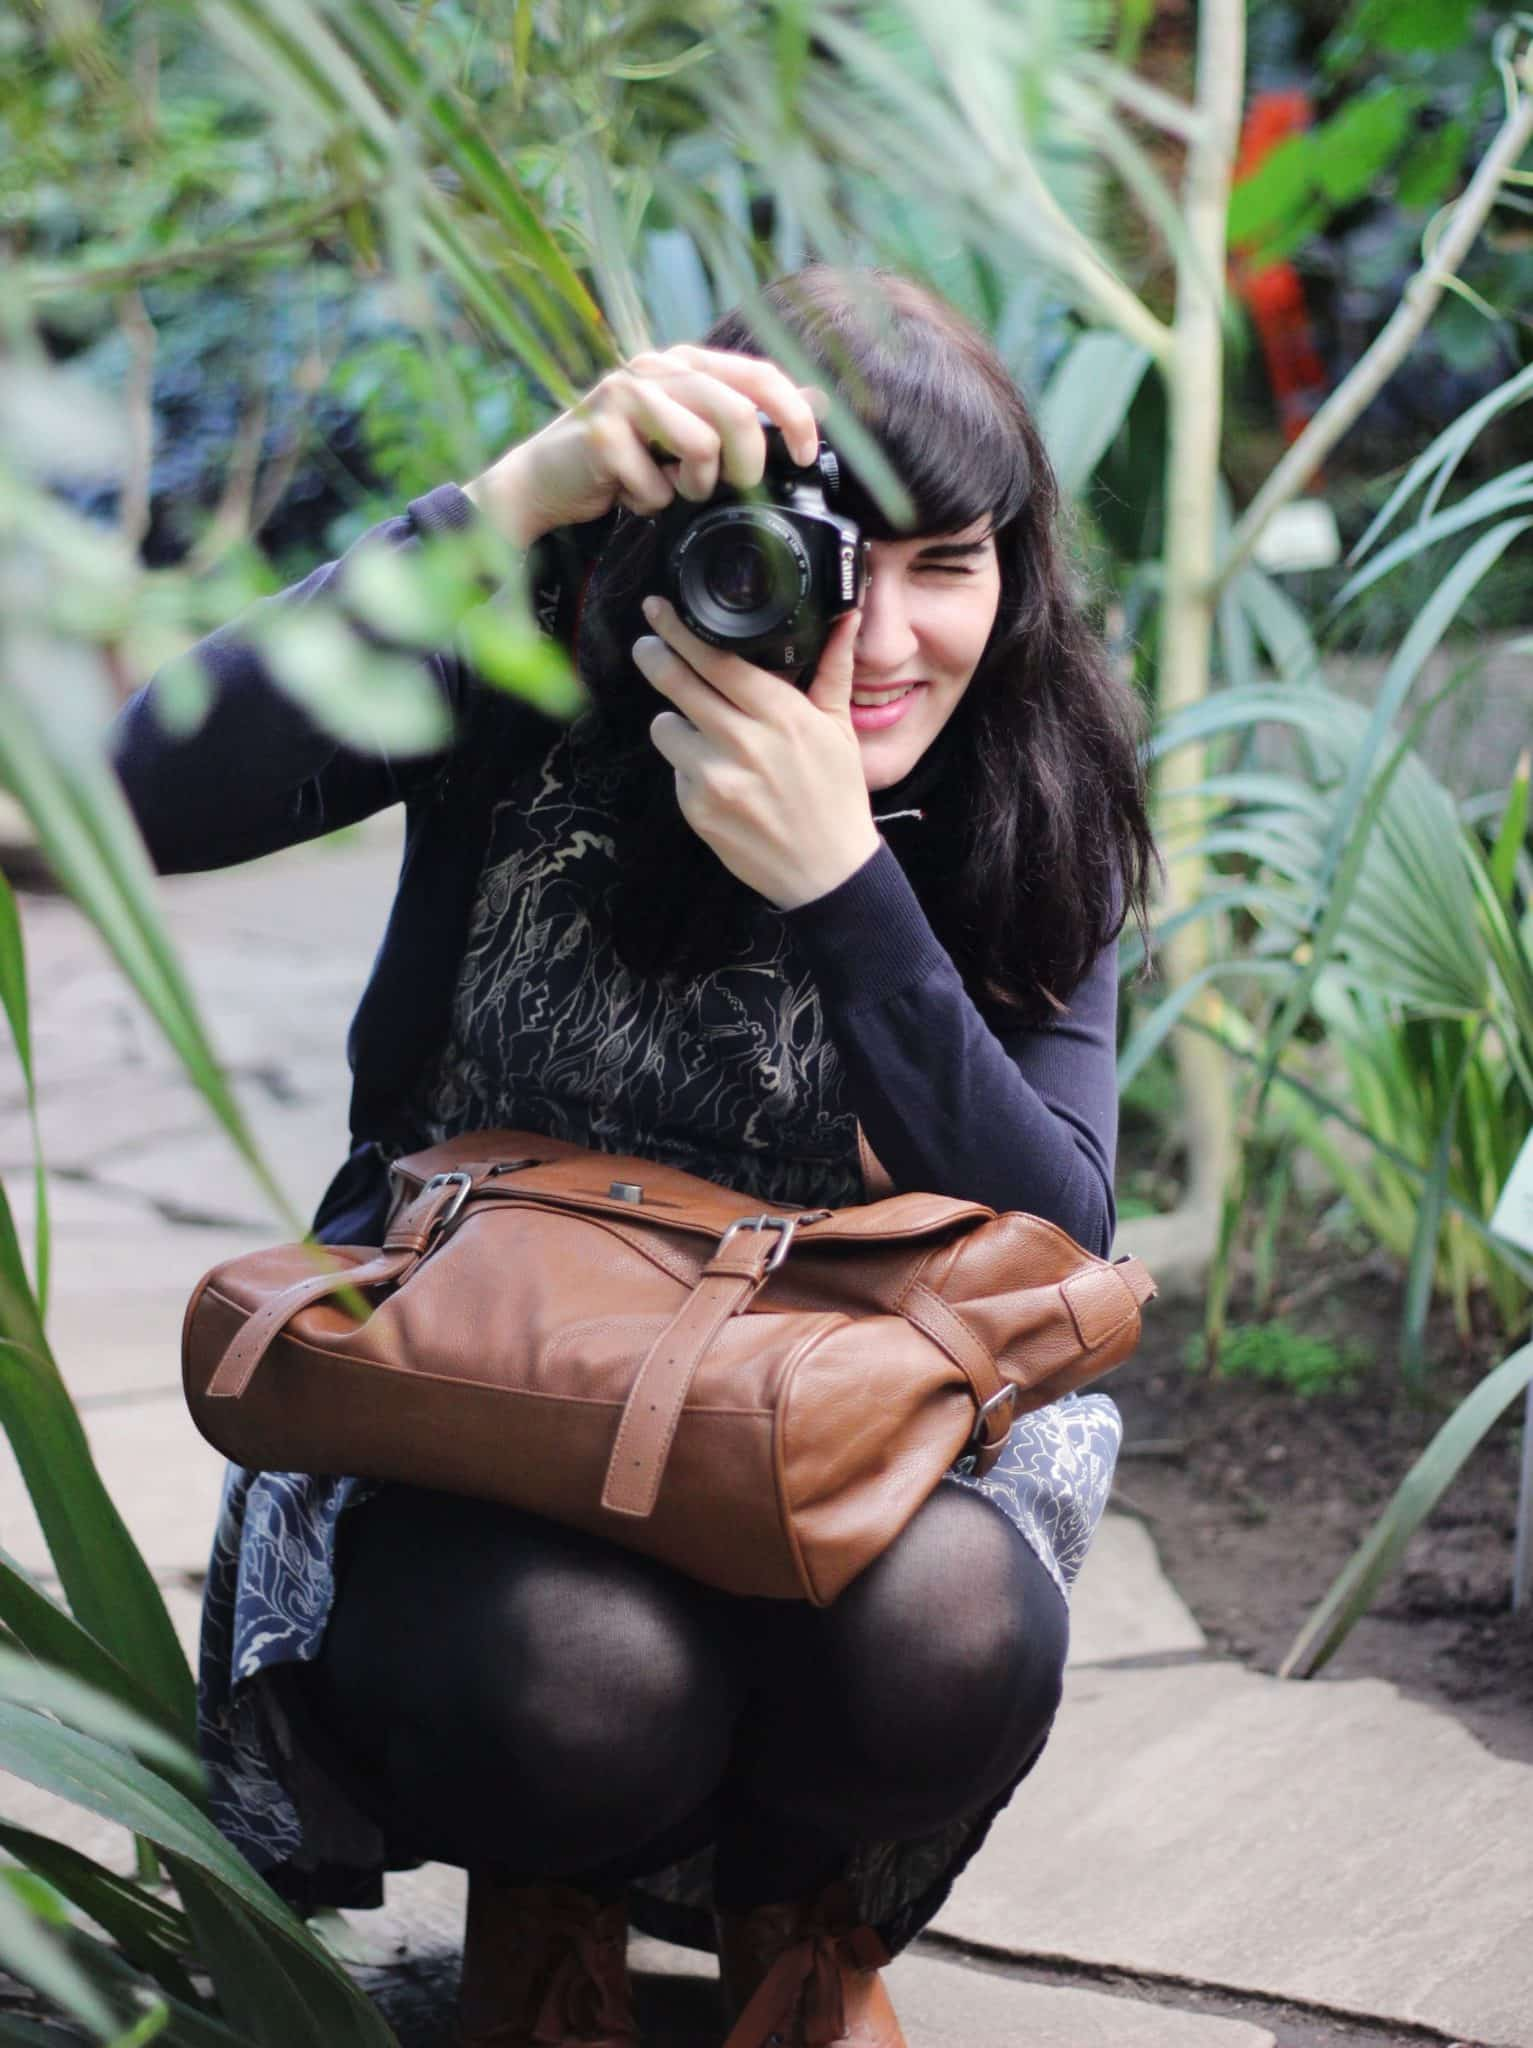 Make your photography business stand out